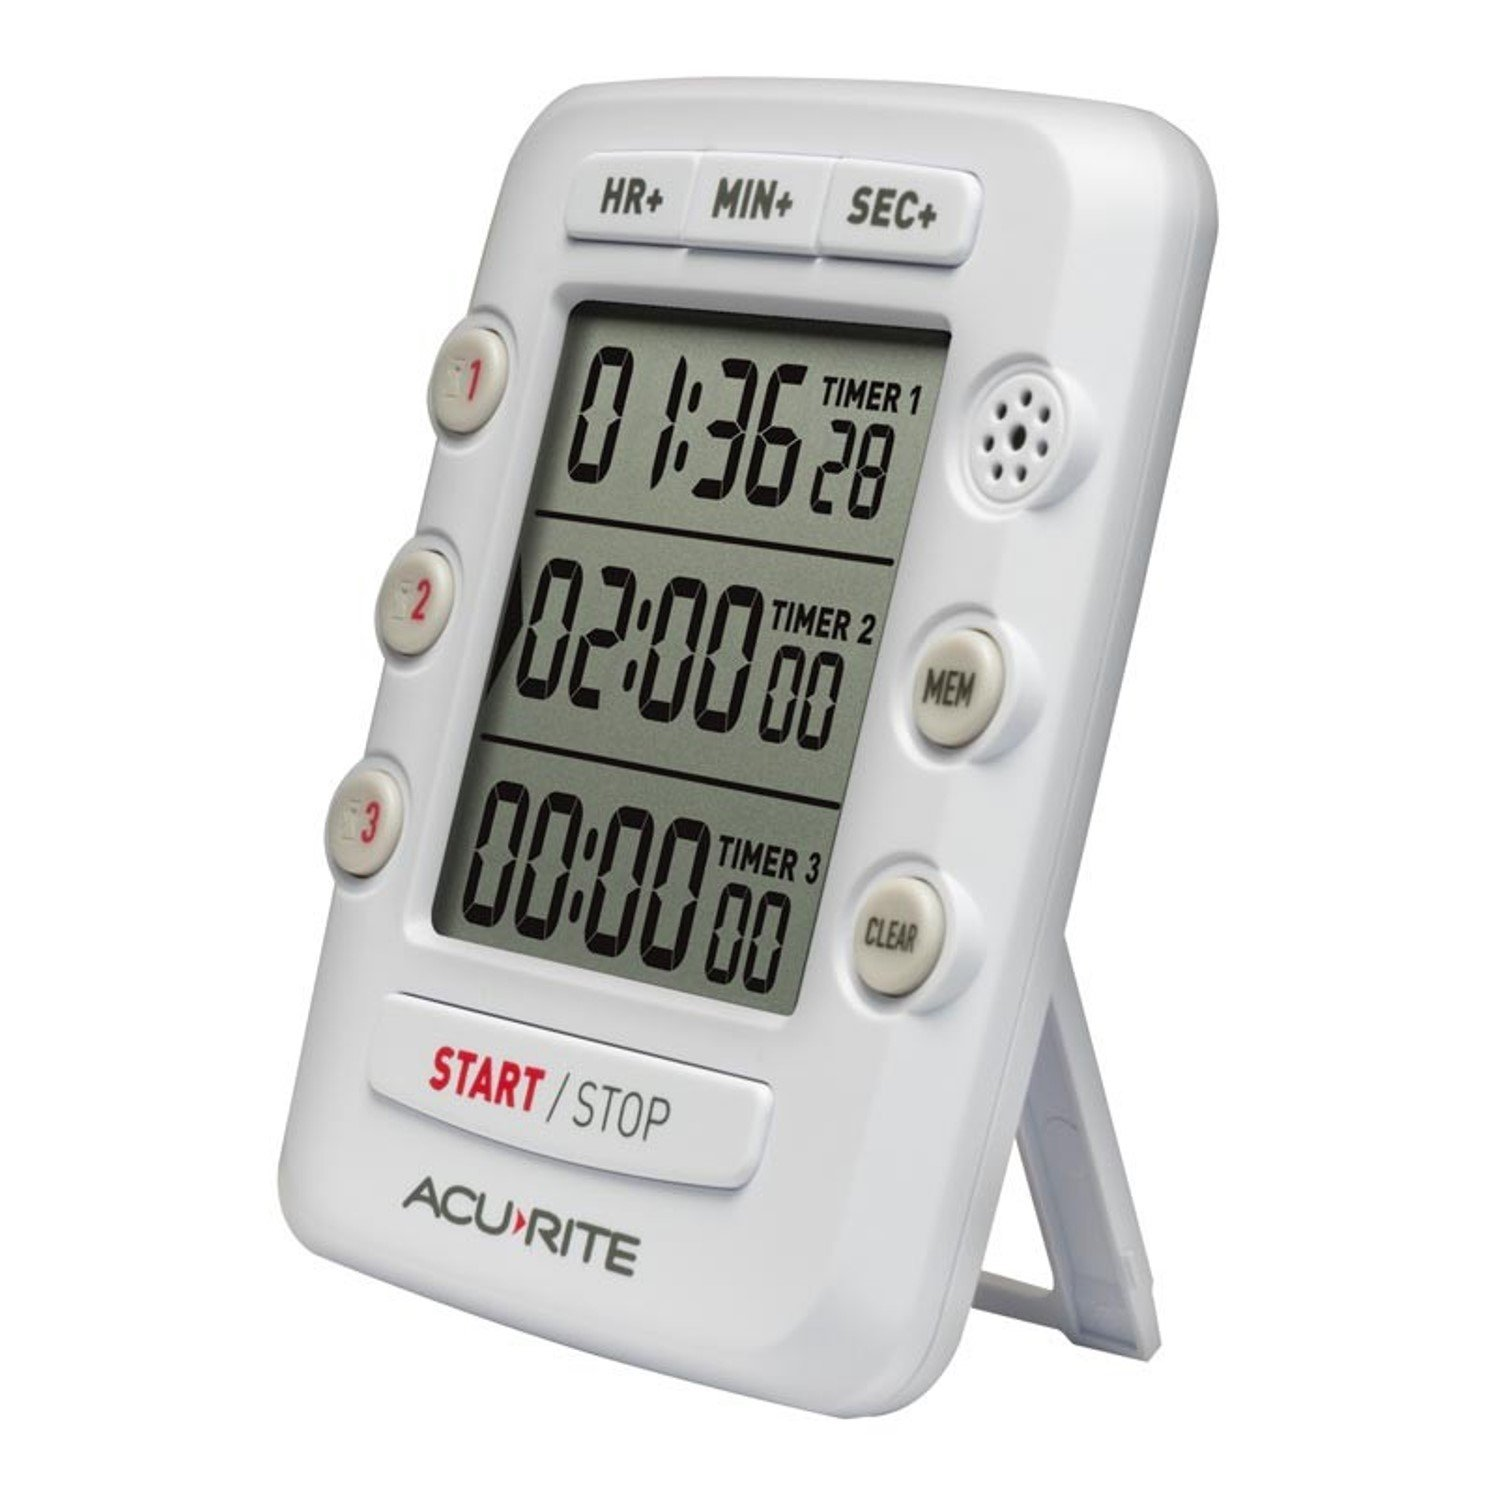 00482, Triple Event Digital Kitchen Timer with Jumbo Display